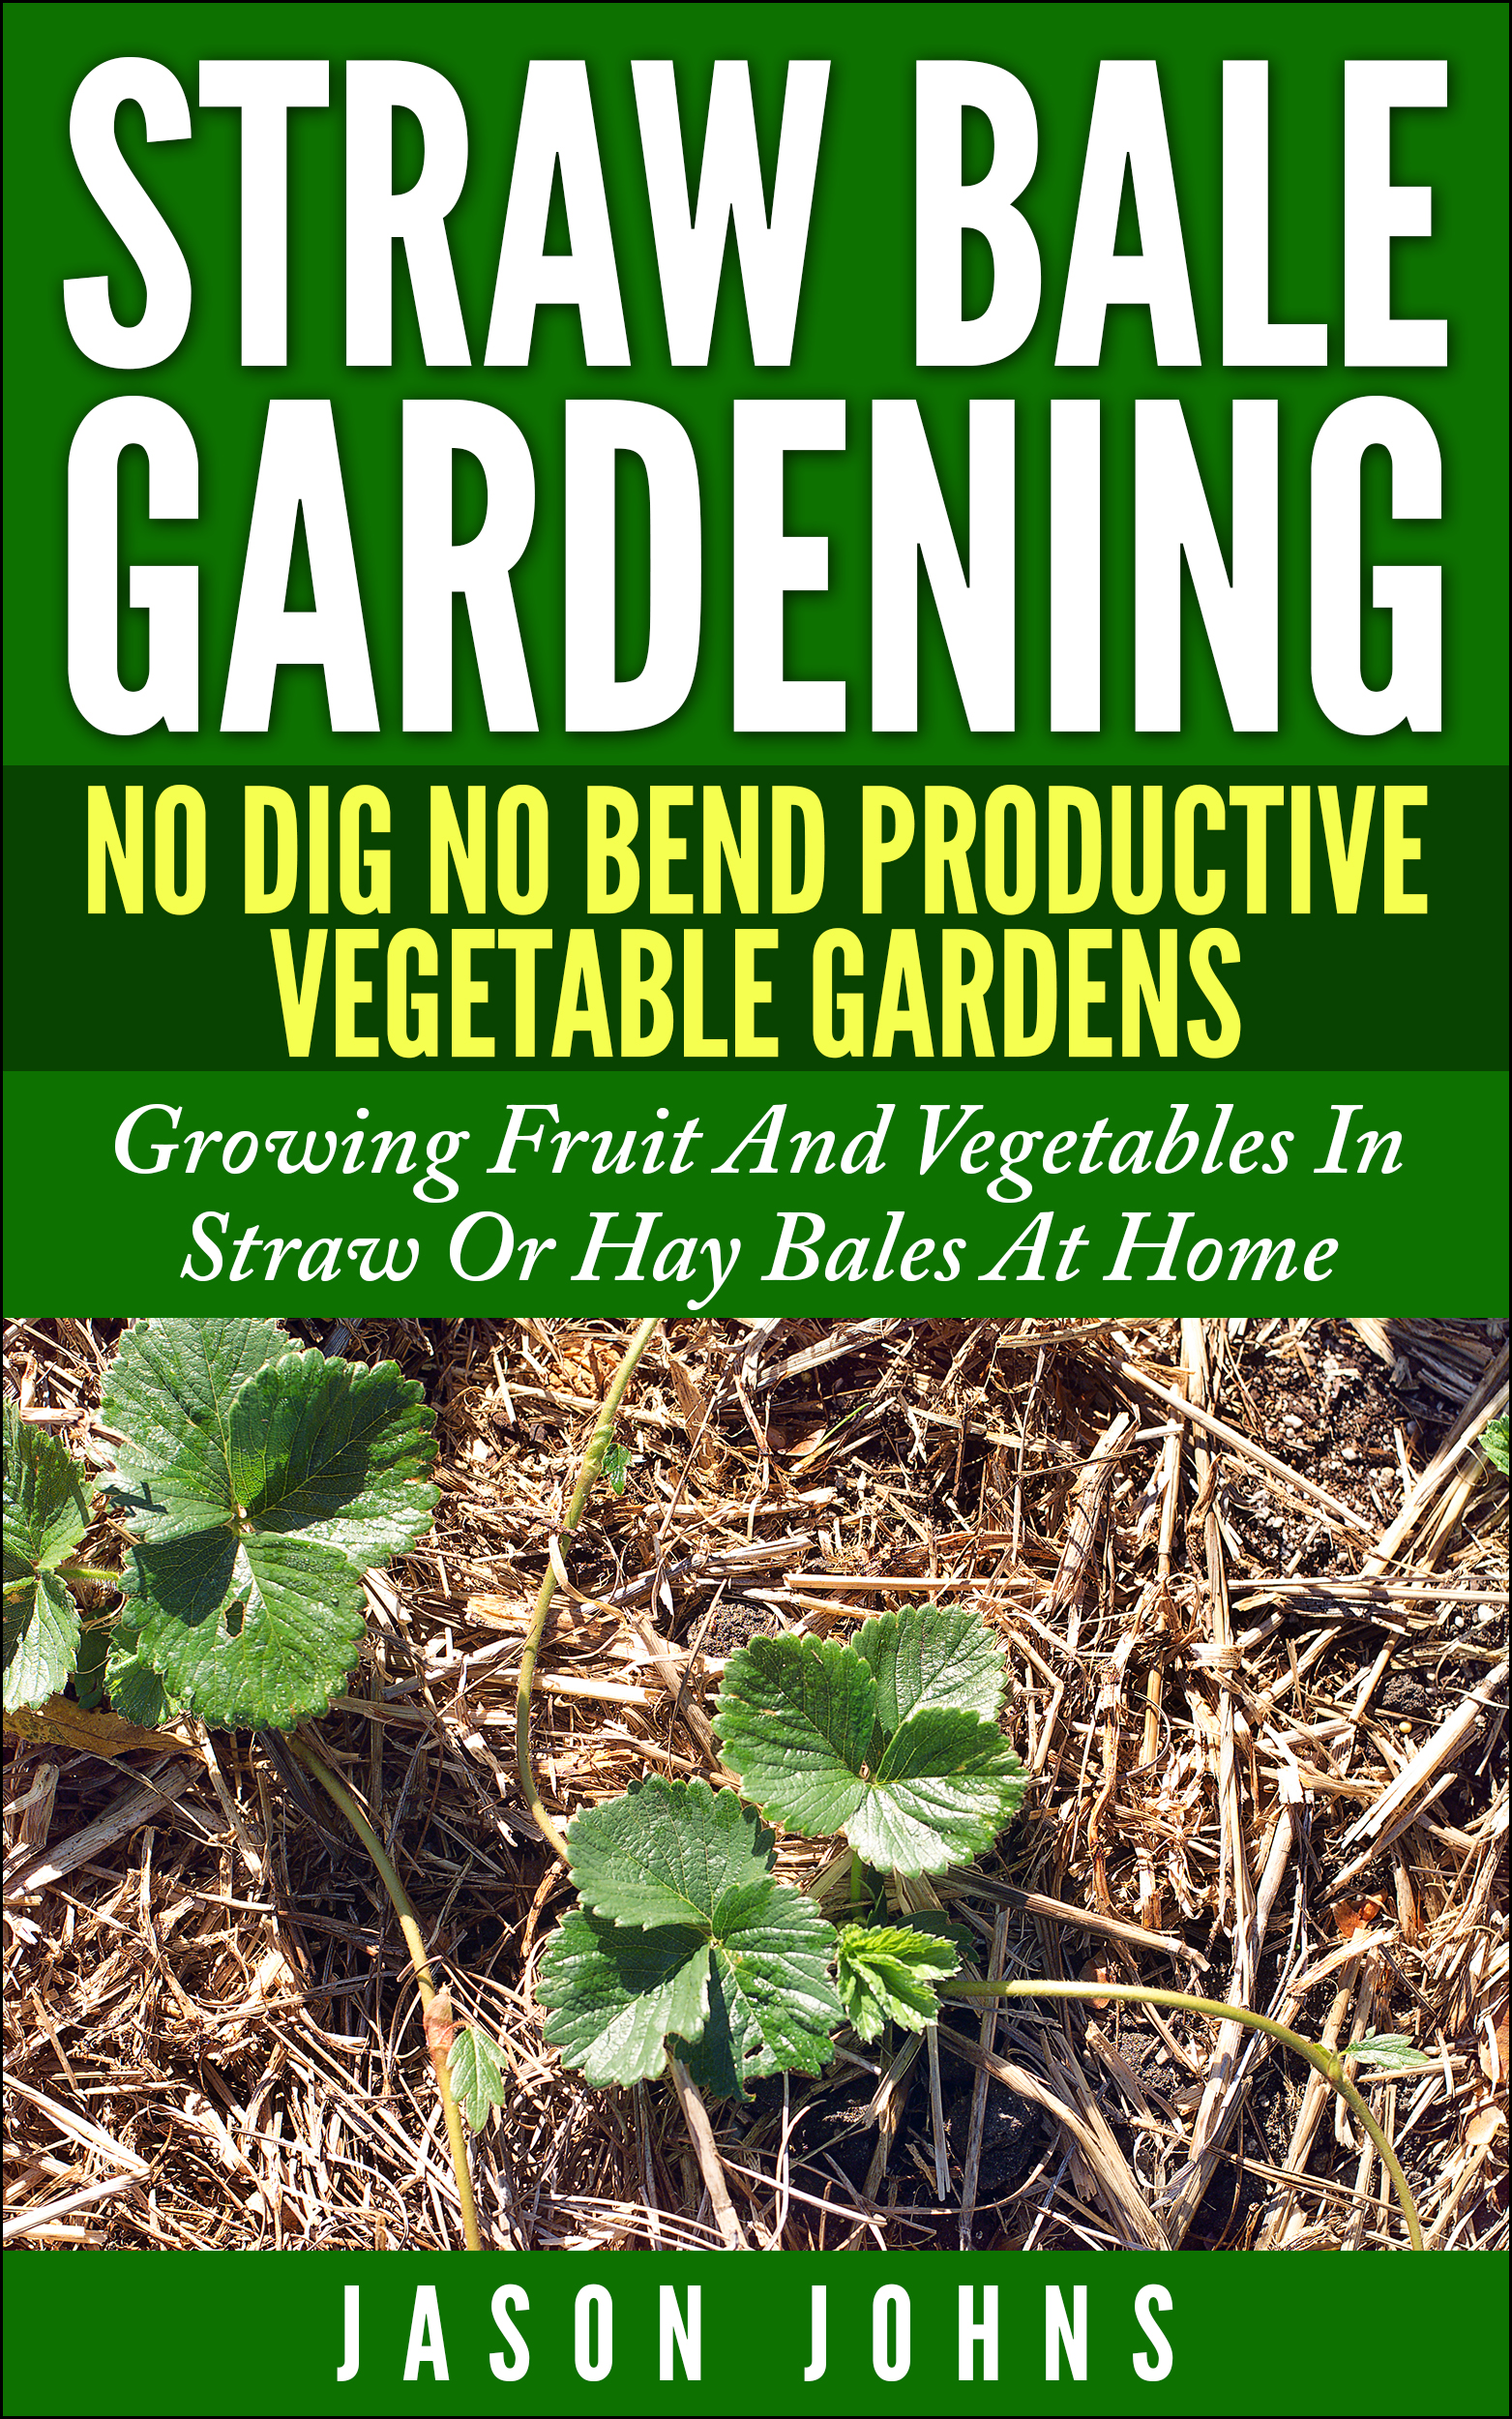 No dig vegetable gardens with raised garden beds - Straw Bale Gardening No Bend No Dig Productive Vegetable Gardens Growing Fruit And Vegetables In Straw Or Hay Bales At Home